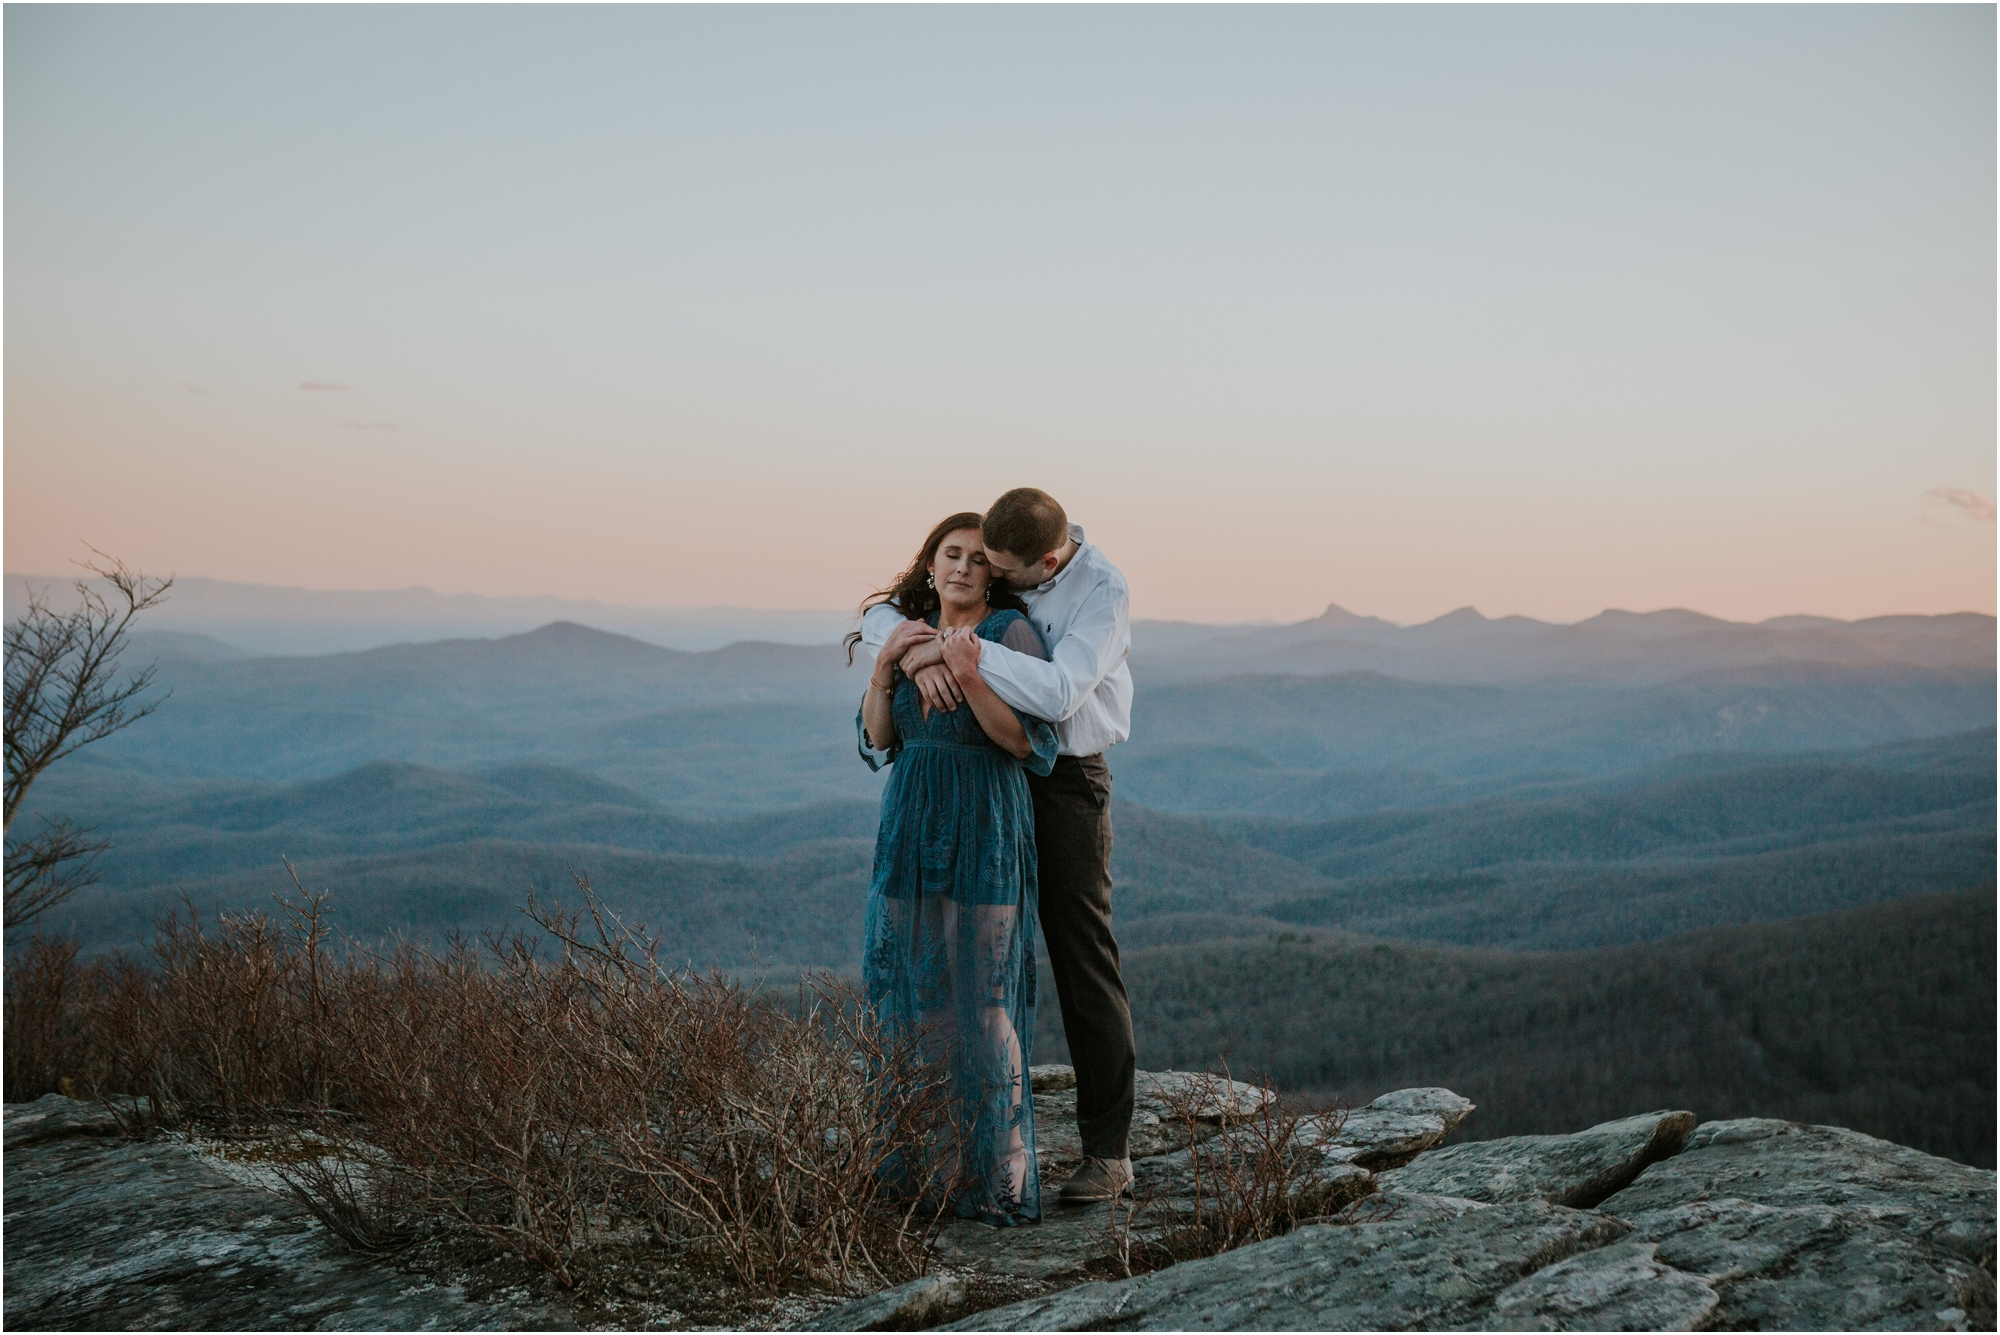 blue-ridge-parkway-engagement-session-north-carolina-boone-blowing-rock-northeast-tennessee-katy-sergent-photography_0025.jpg